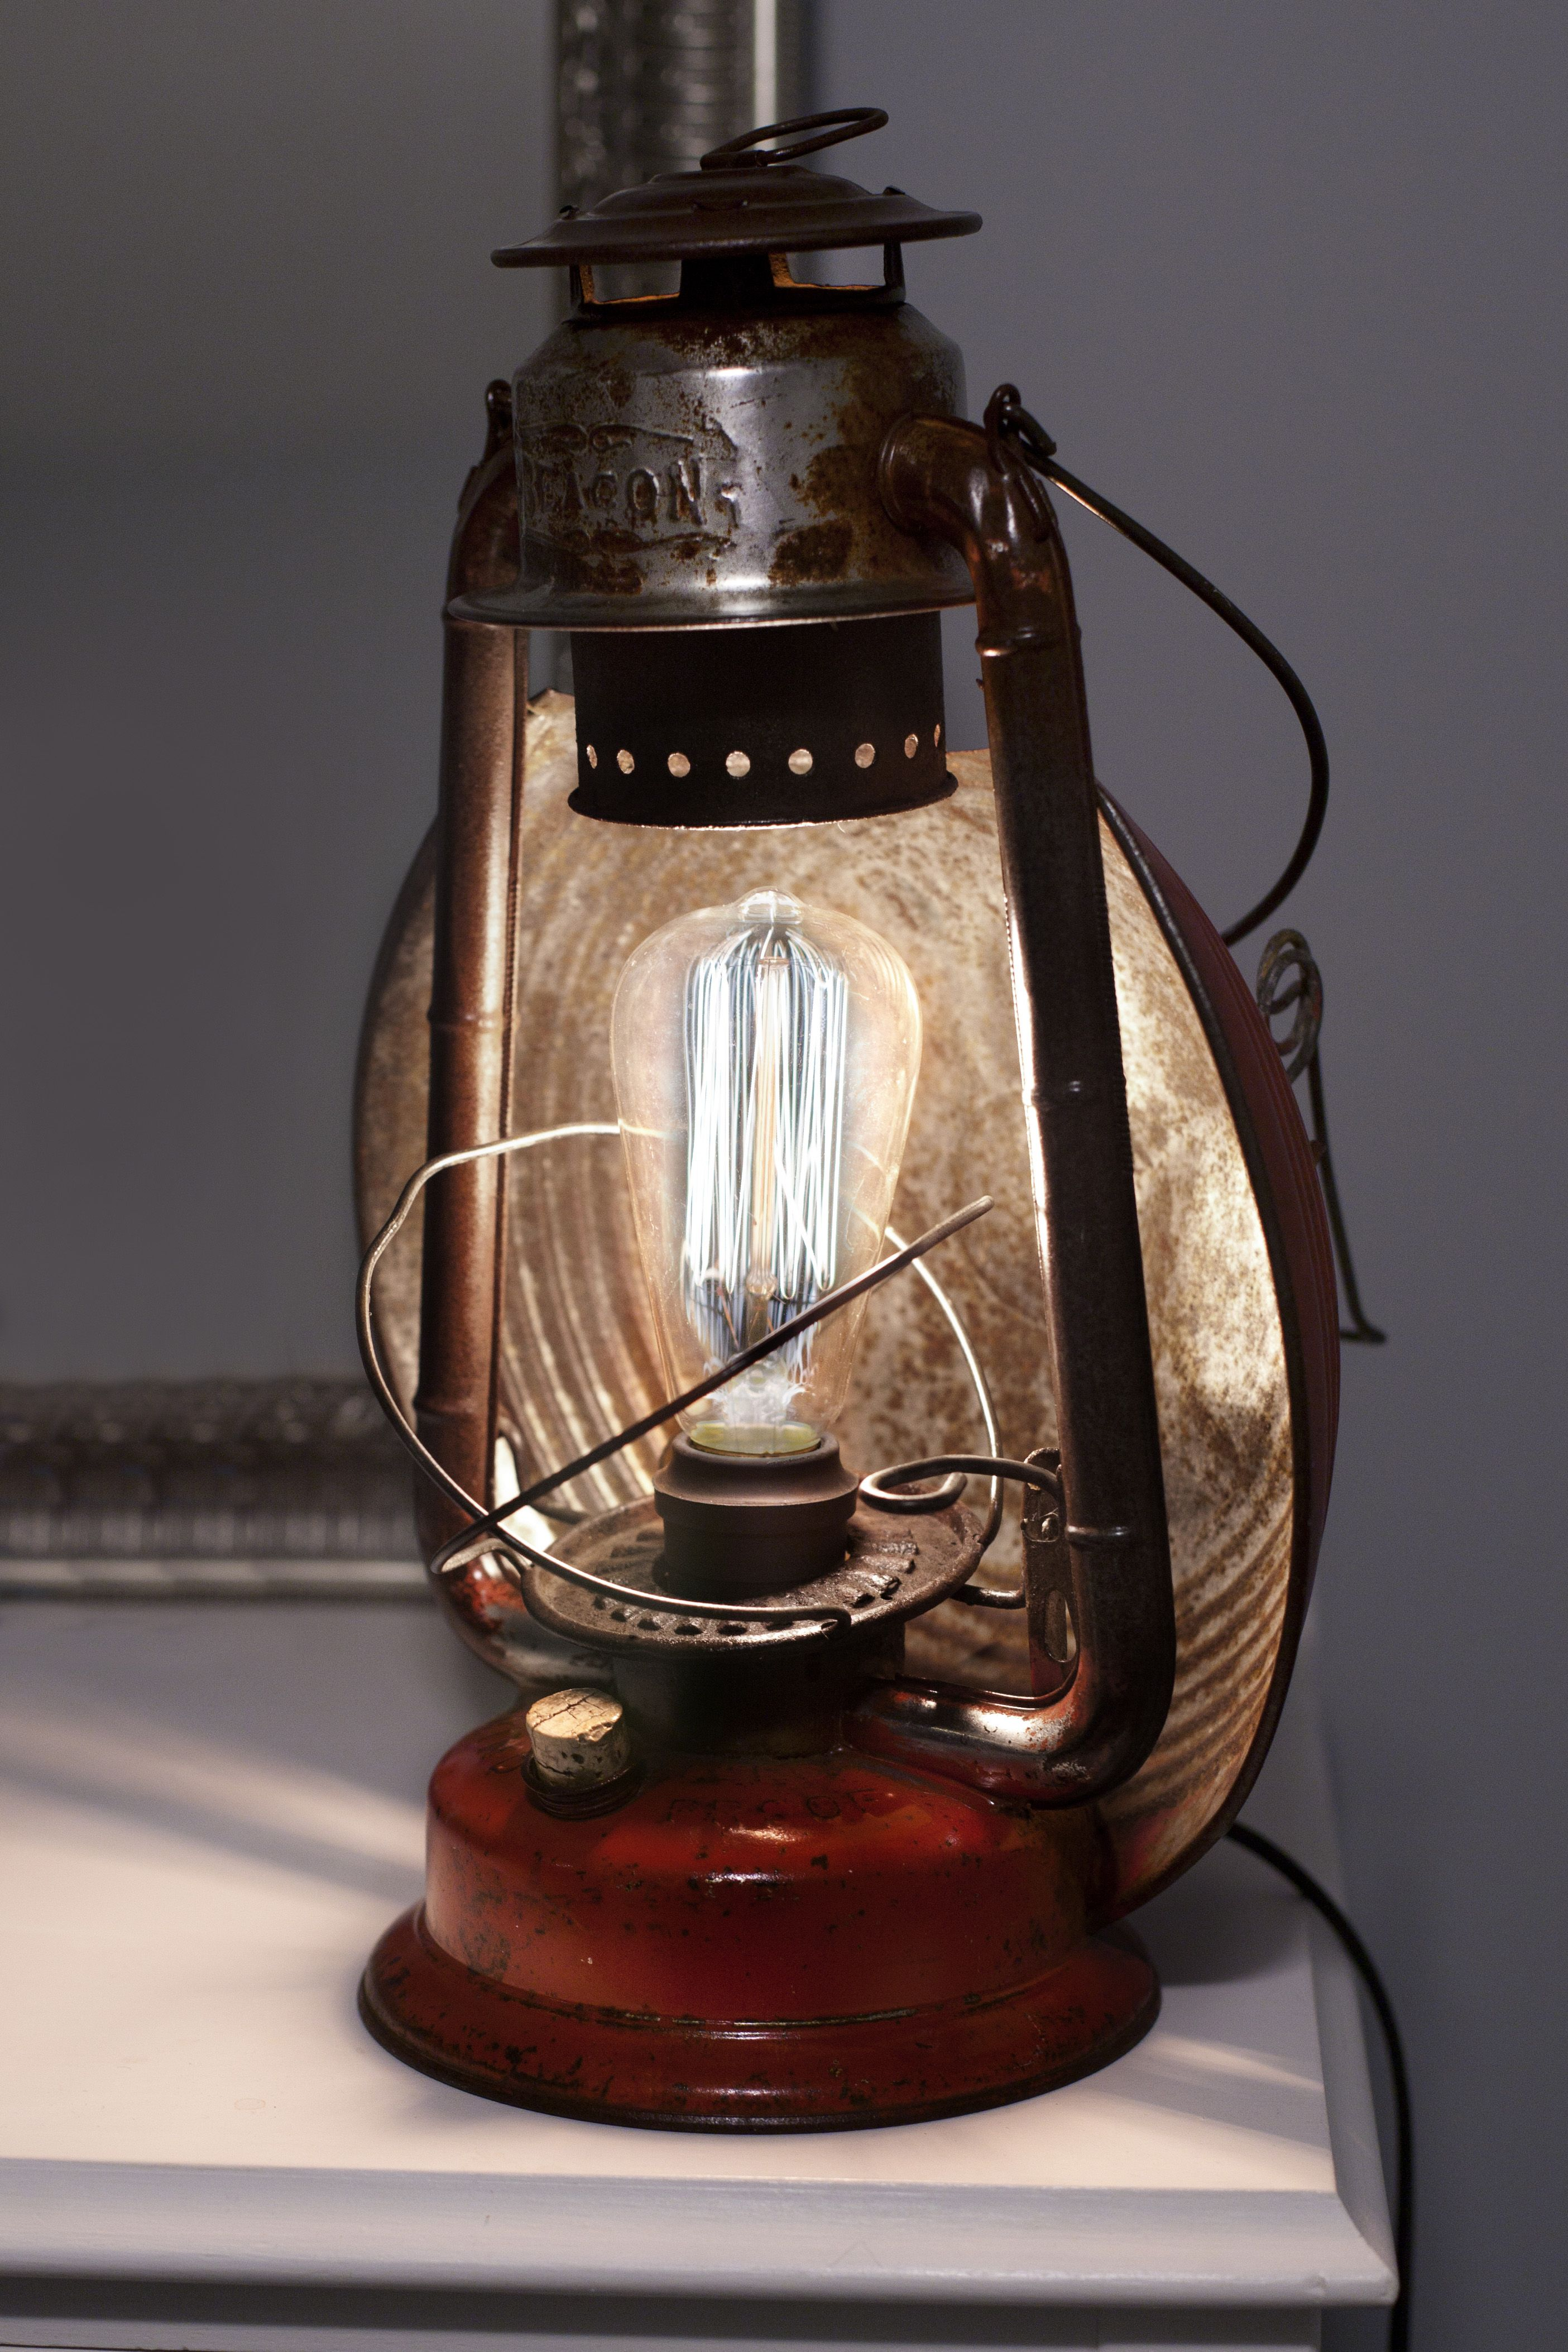 Vintage Beacon Edison Lamp, Red, Upcycled, Lantern by House of the ... for Lamp Product Photography  183qdu